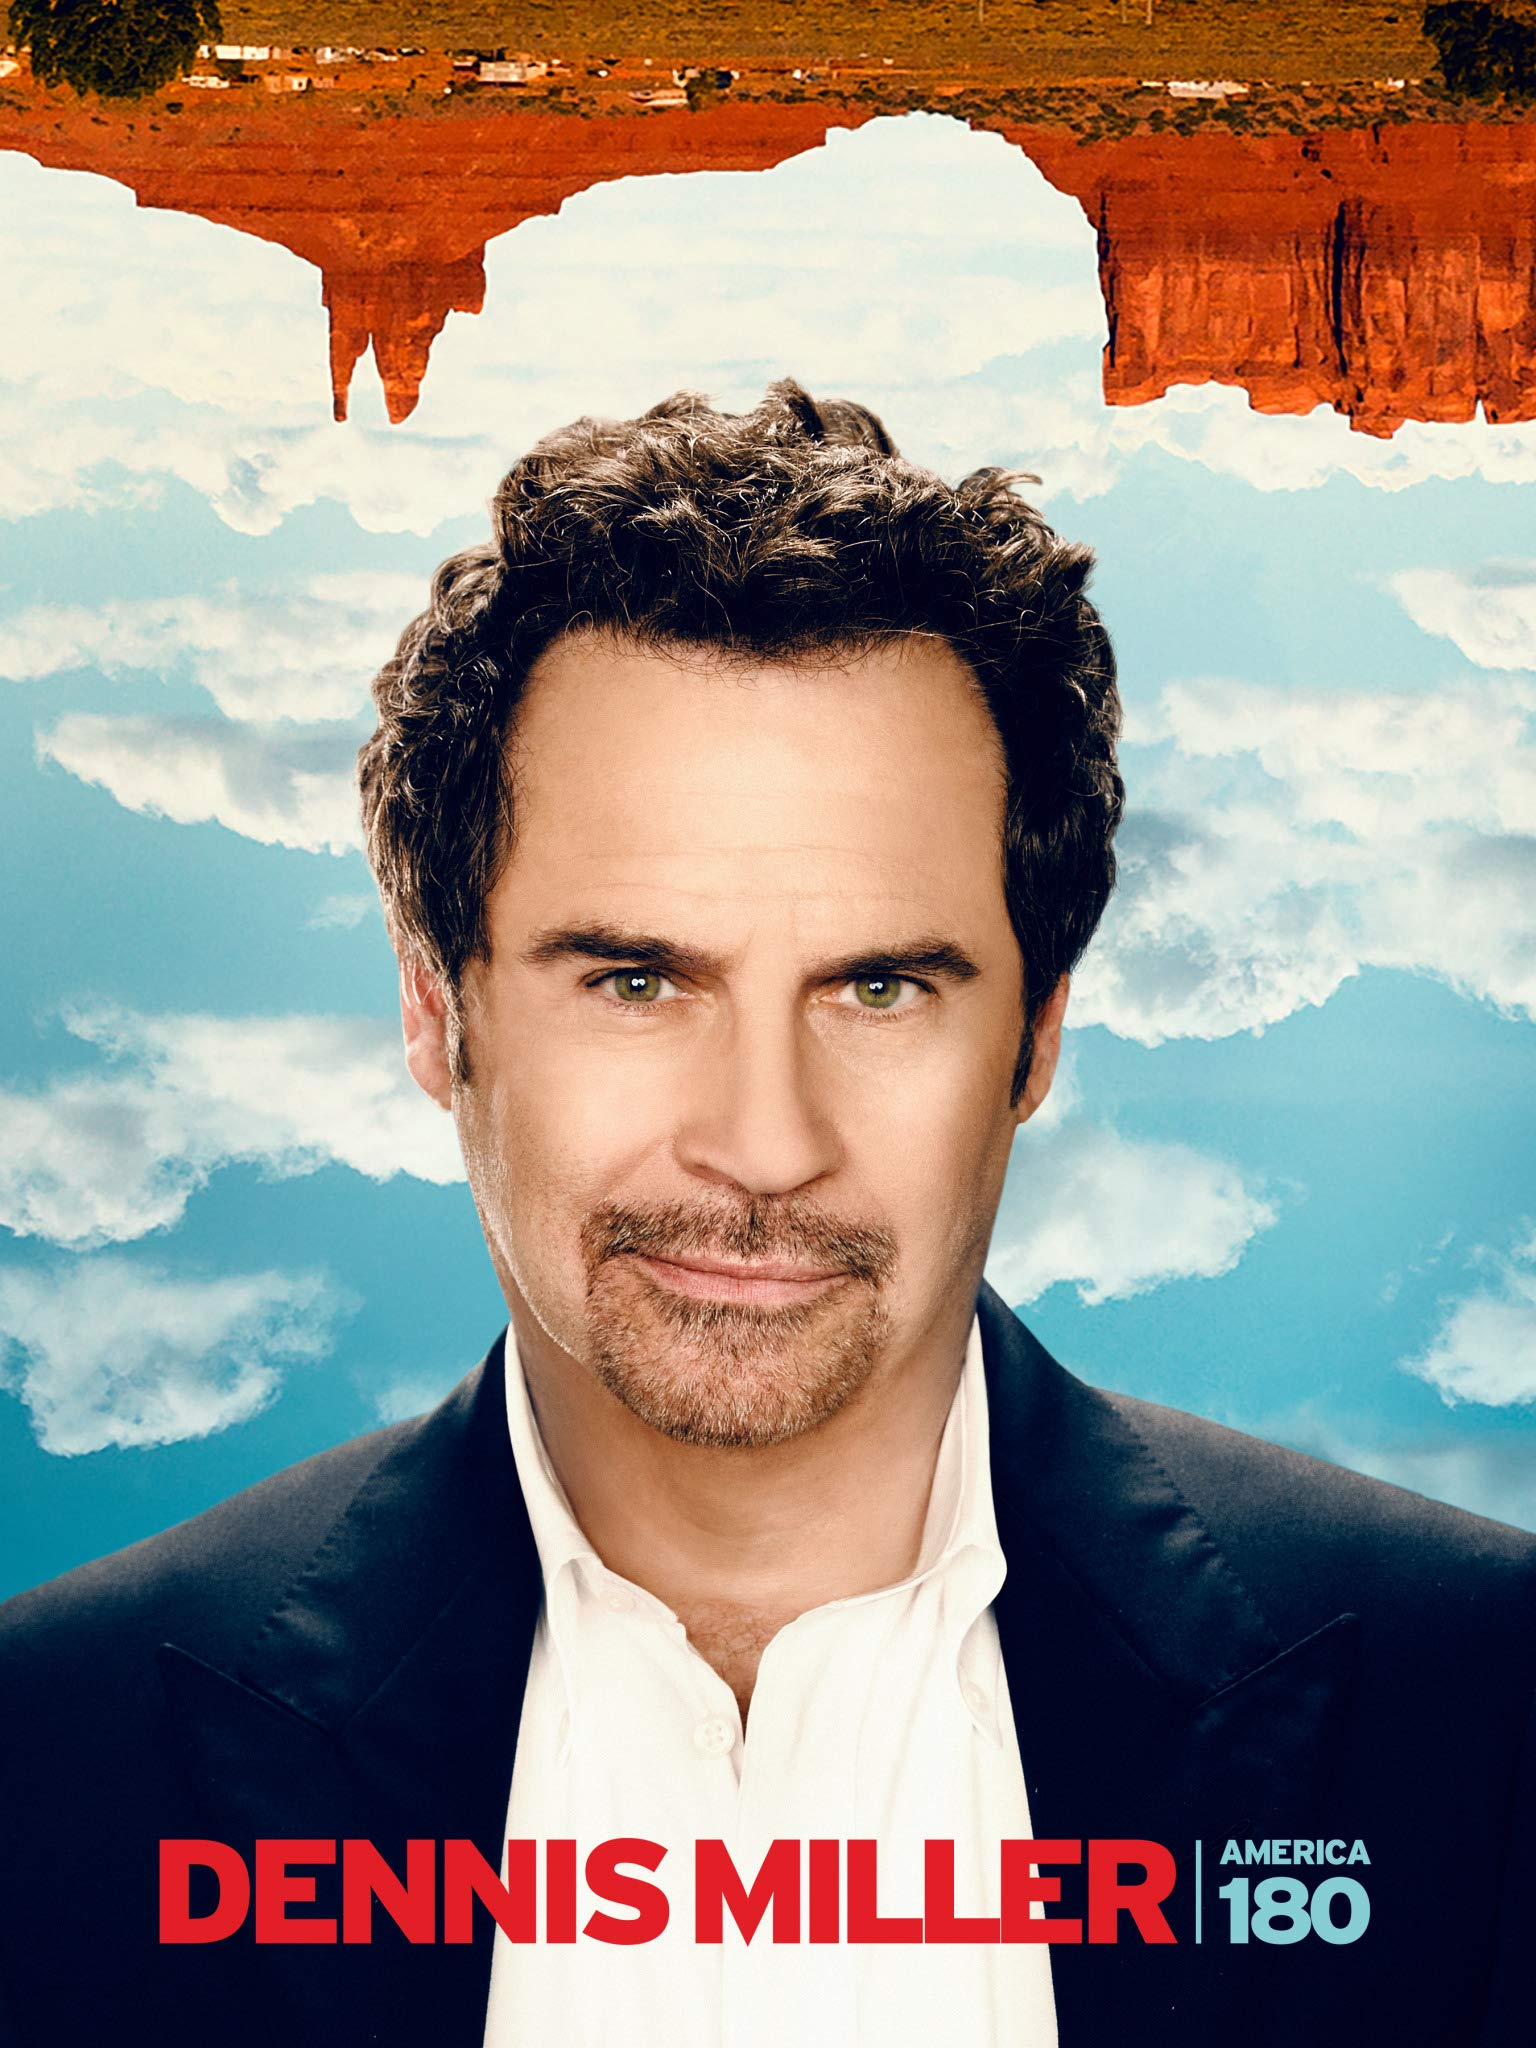 Dennis Miller: America 180 on Amazon Prime Video UK